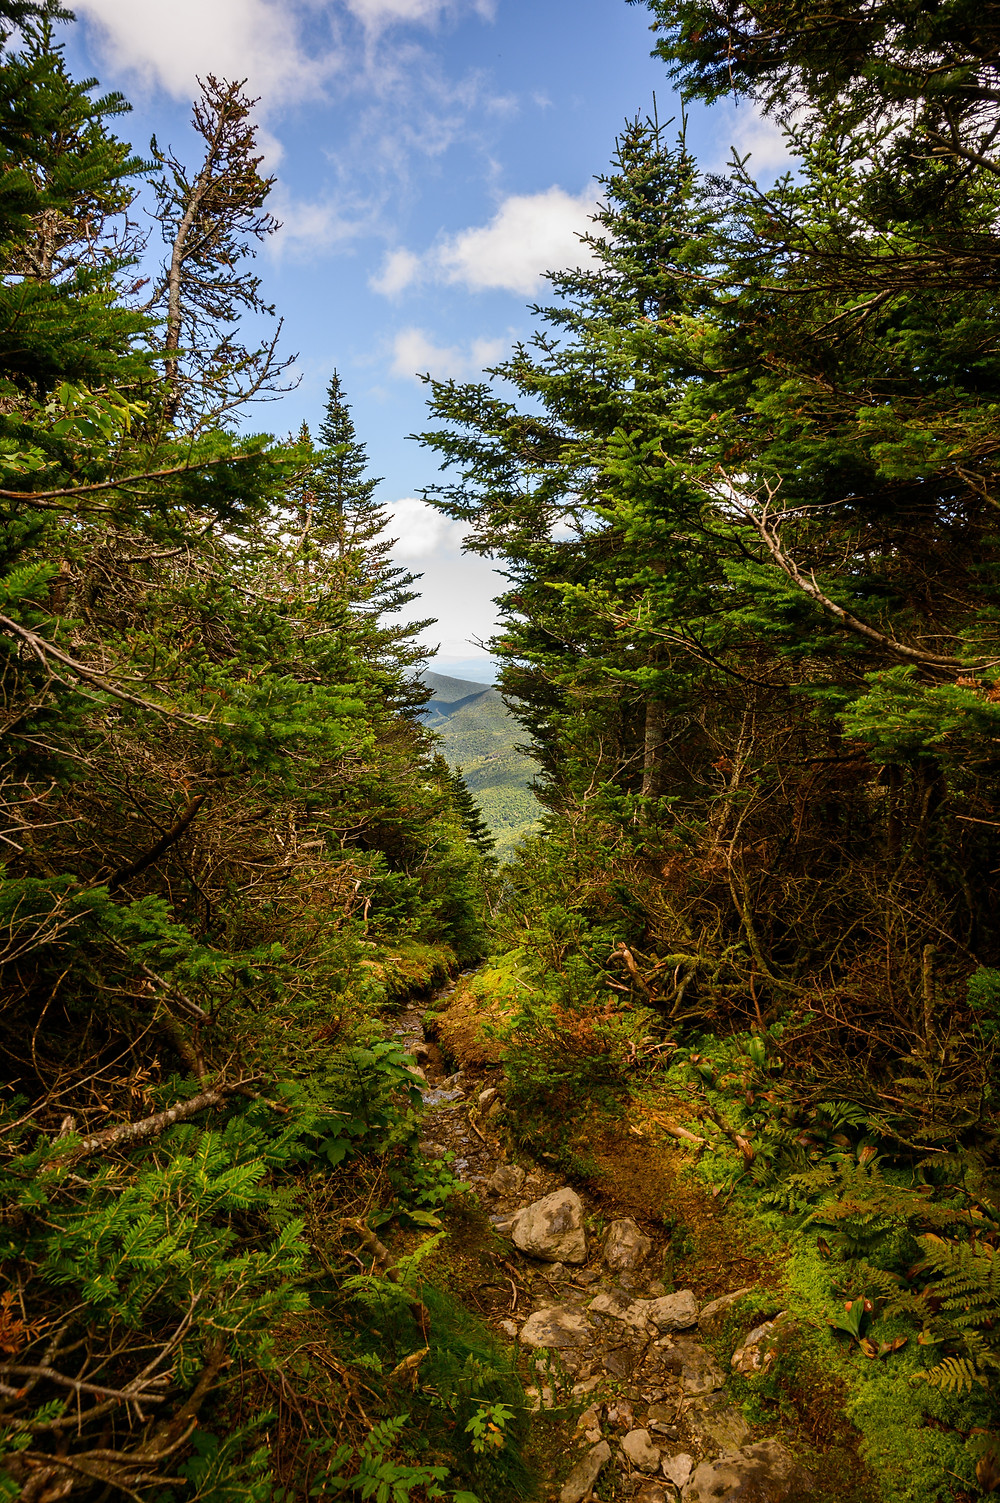 the Long Trail splits the trees and stretches off into the horizon in Green Mountains National Forest in Vermont, home of the greenest greens that ever did green